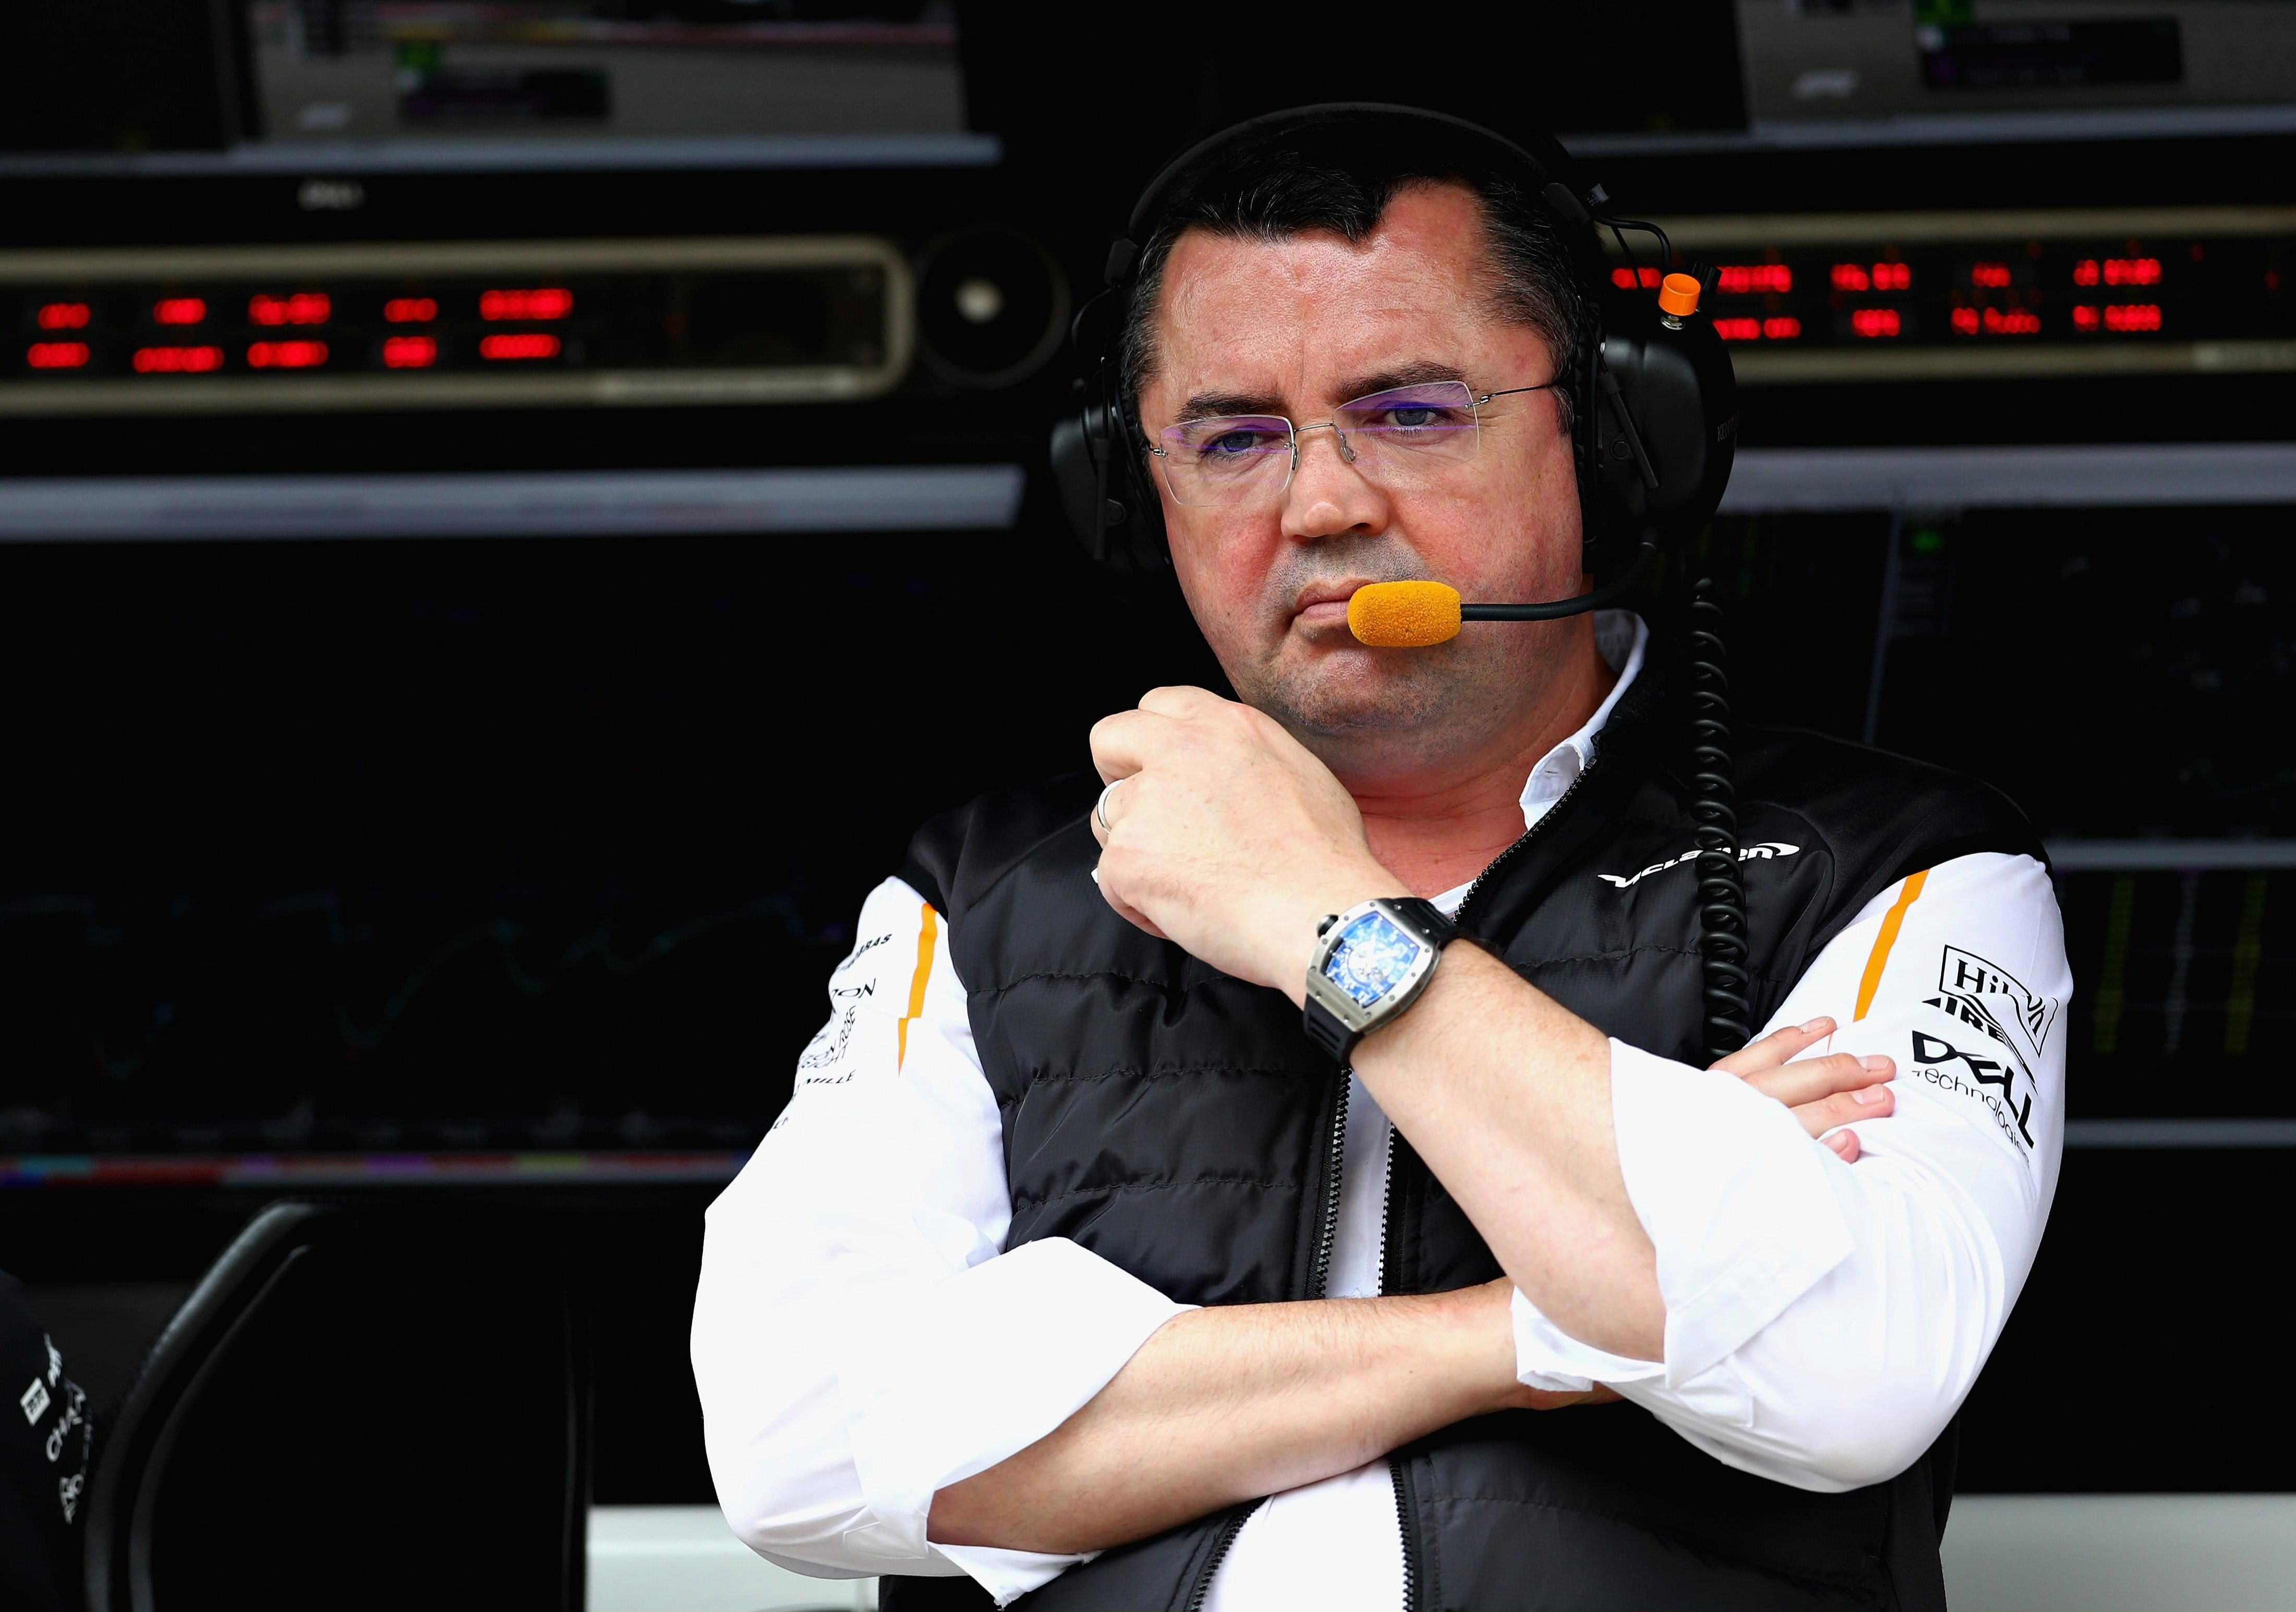 Boullier took over the role in 2014